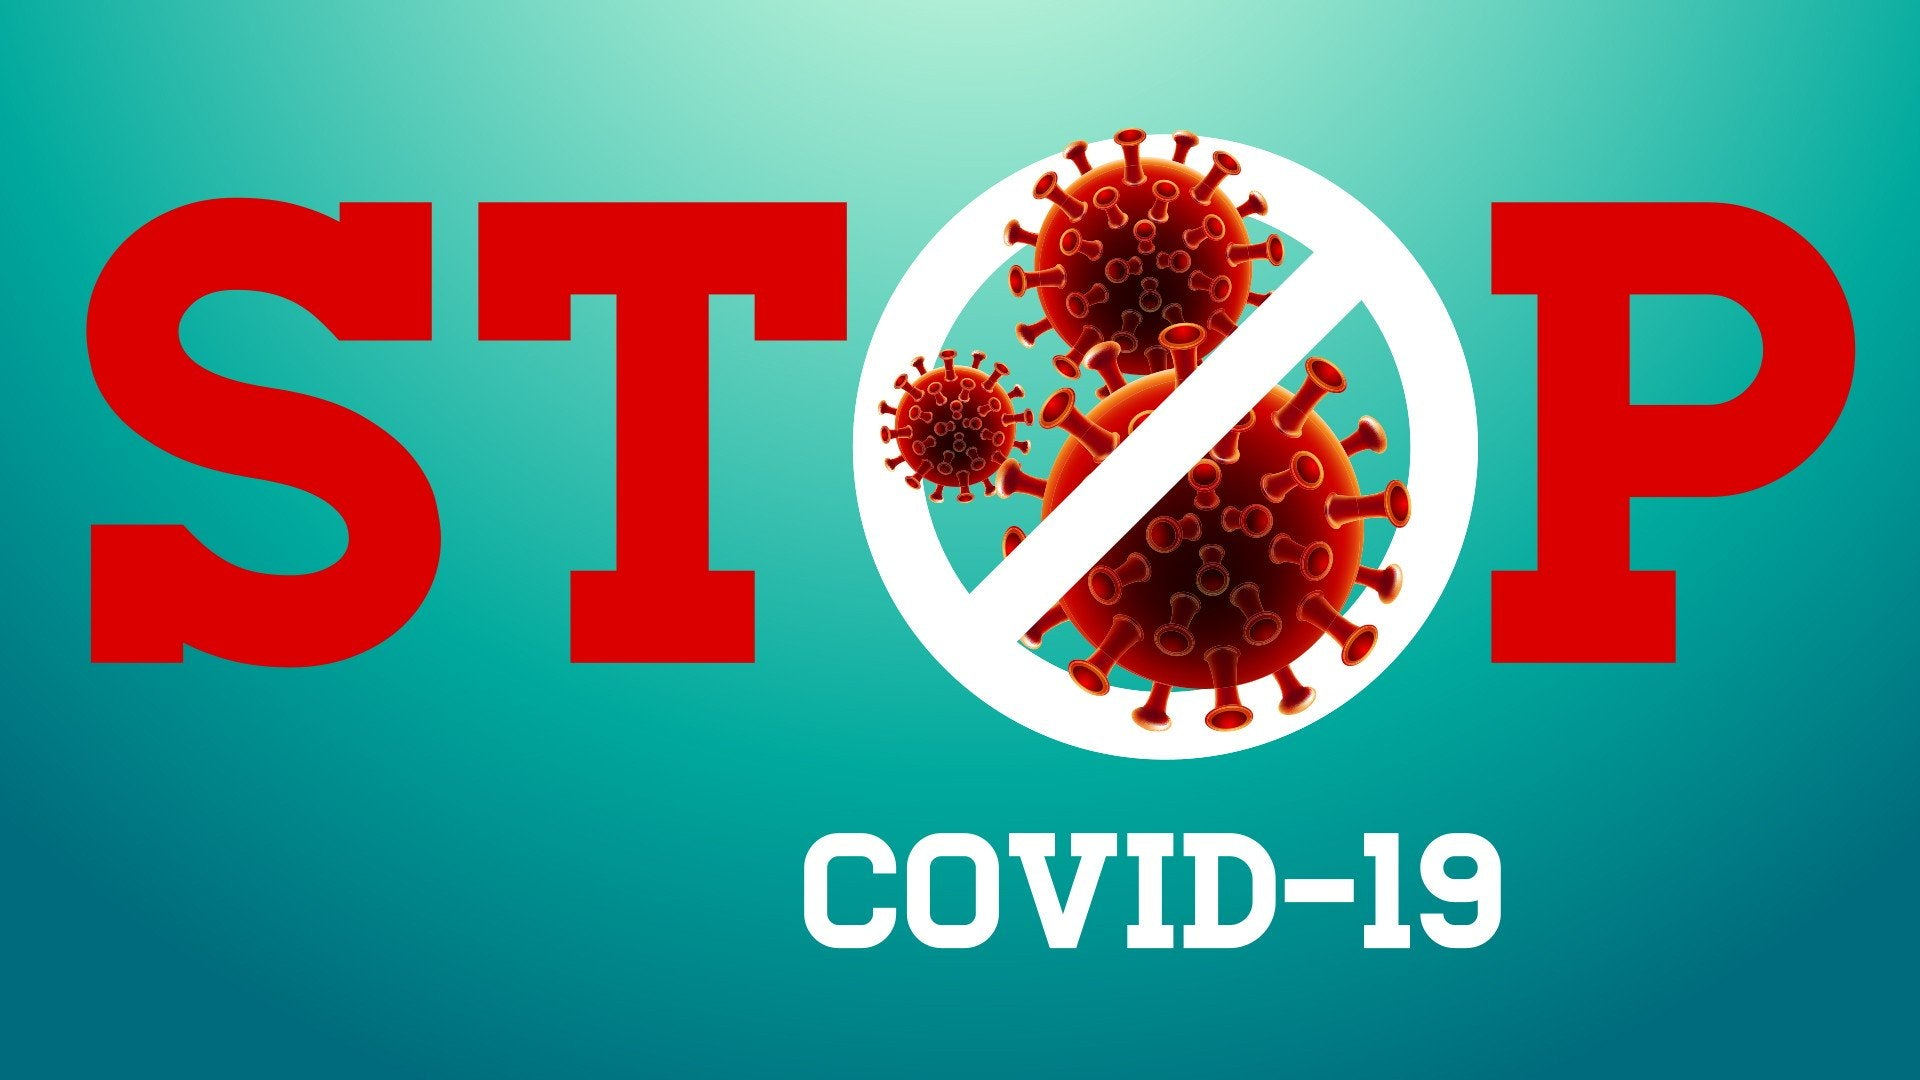 Help Stop COVID-19 - Take Measures Against the New Coronavirus